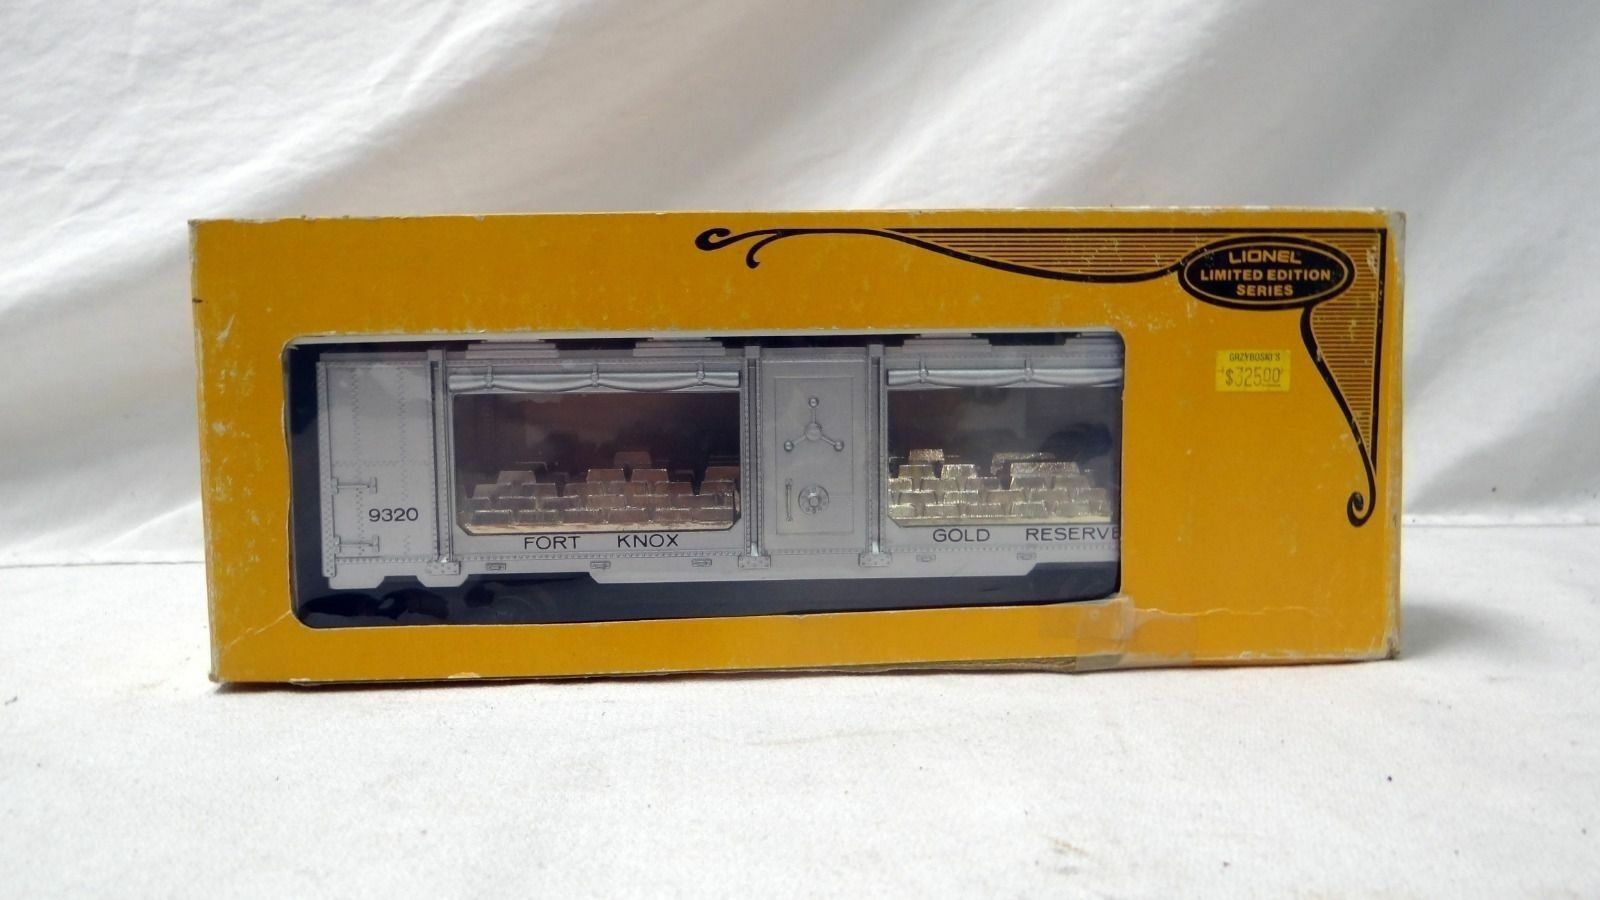 PAIR VINTAGE 1979 LIONEL 6-9320 LIMITED EDITION oro BULLION FREIGHT CARS IN BOX